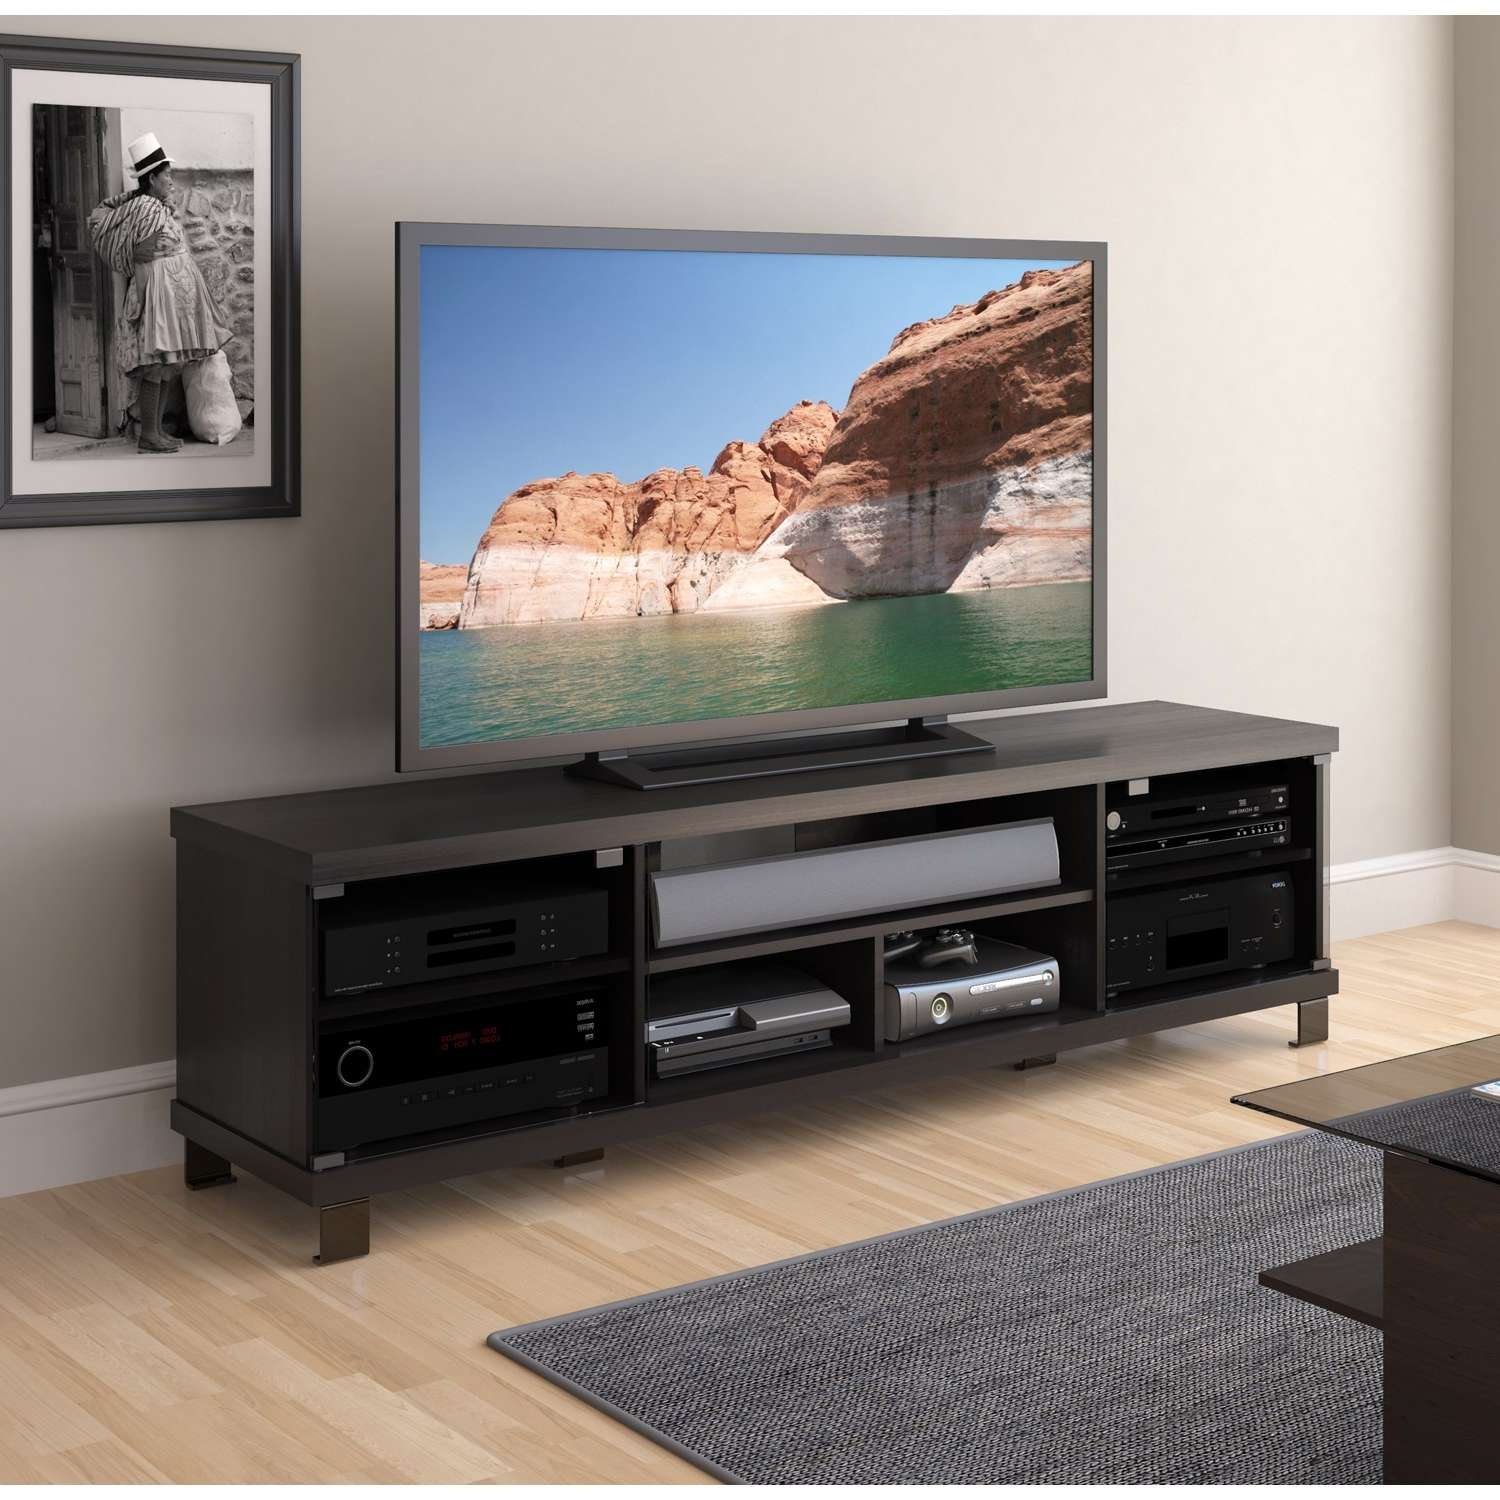 Beautiful Sonax Tv Stands 85 In Home Decorating Ideas With Sonax Regarding Sonax Tv Stands (View 2 of 15)